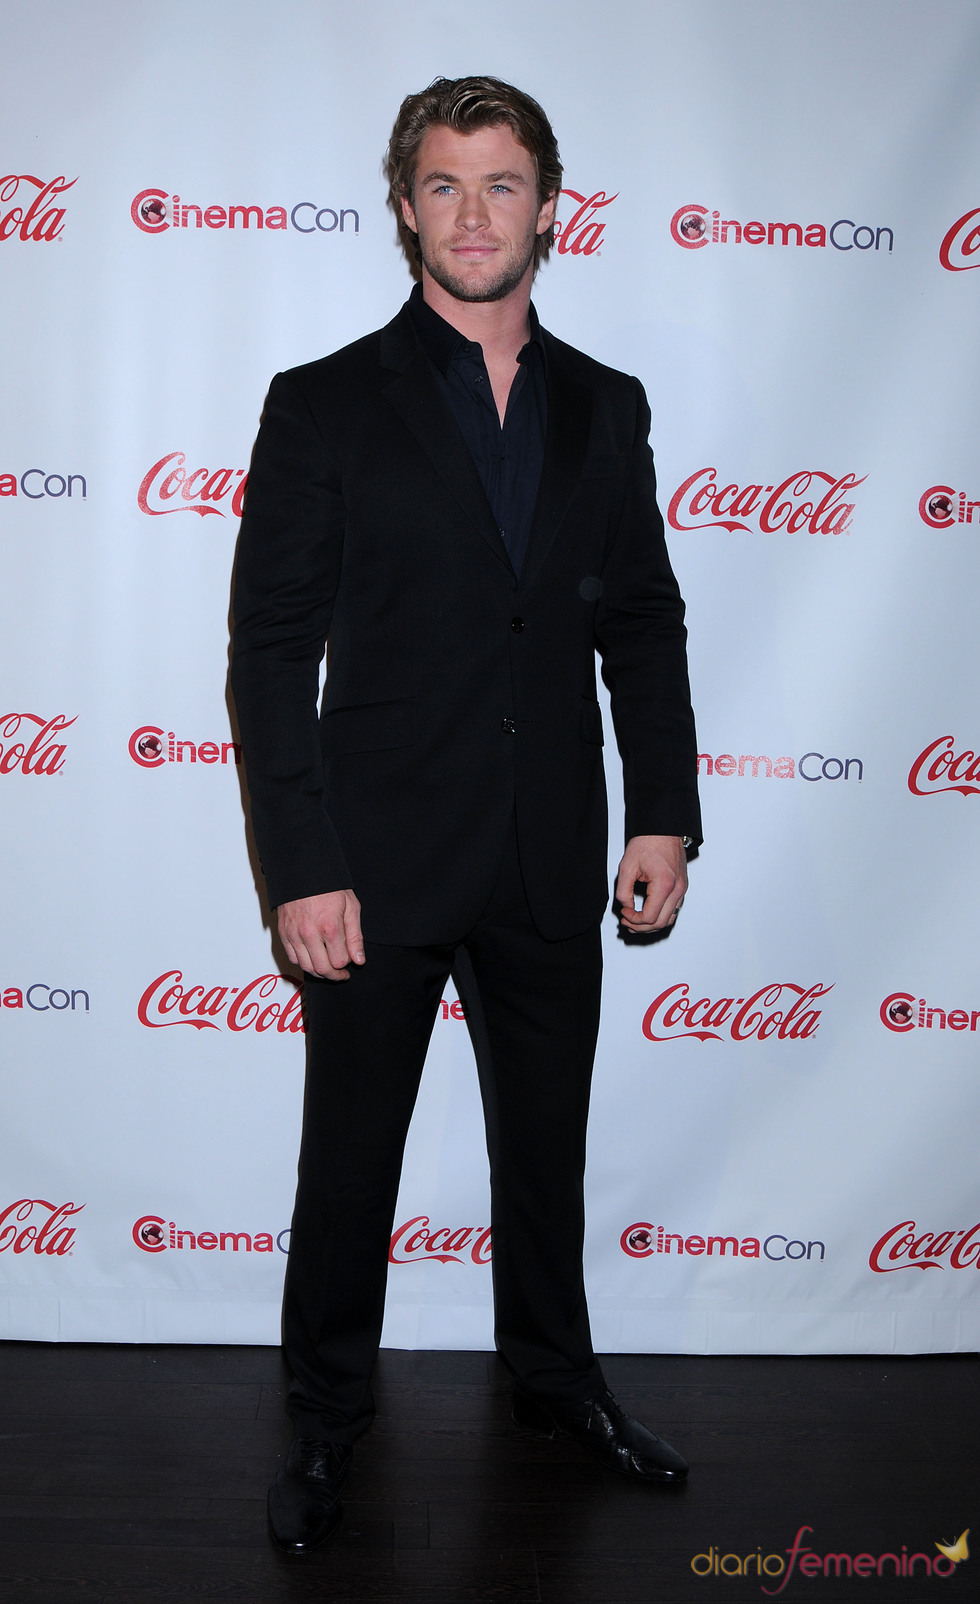 Chris Hemsworth en el Festival CinemaCon